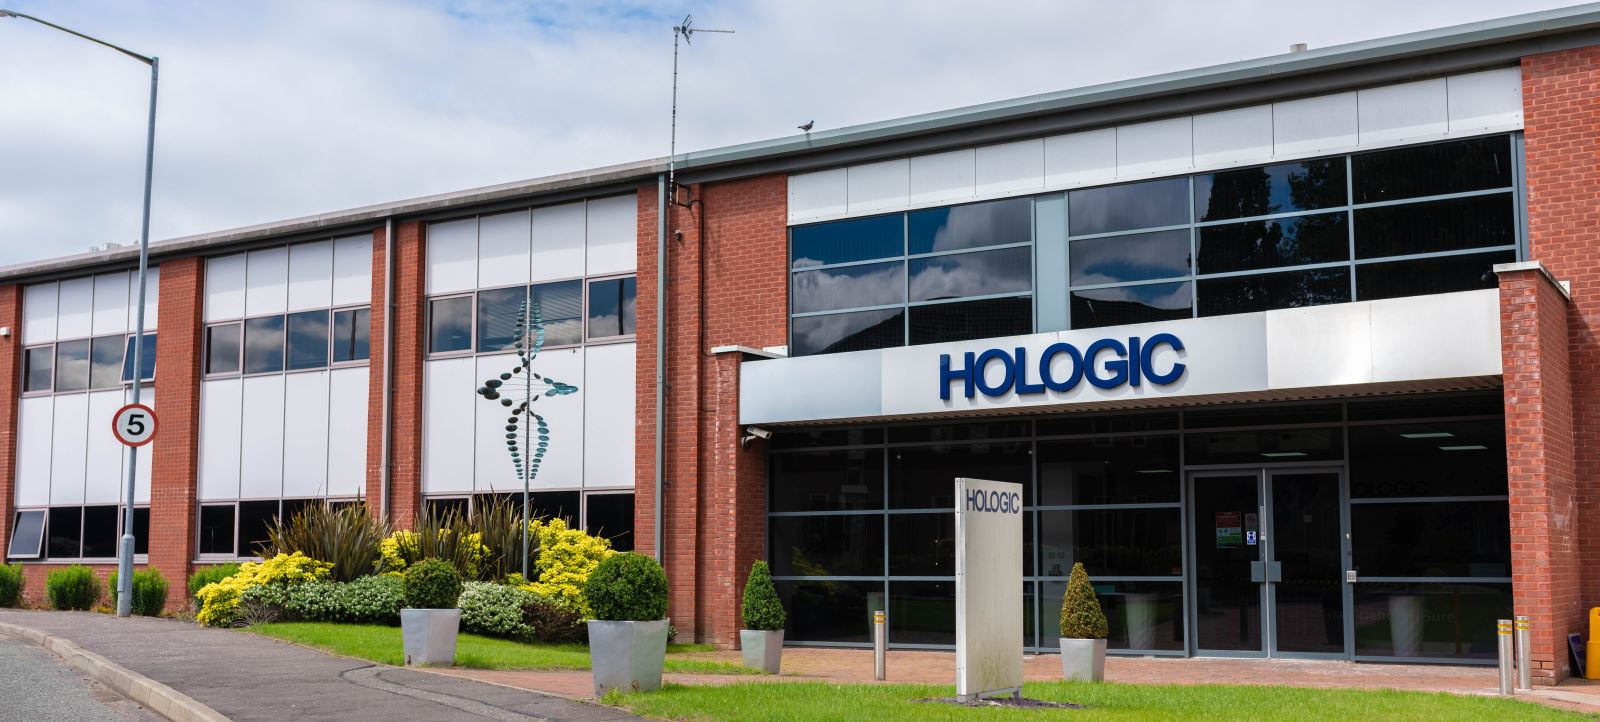 Hologic Manchester manufacturing facility